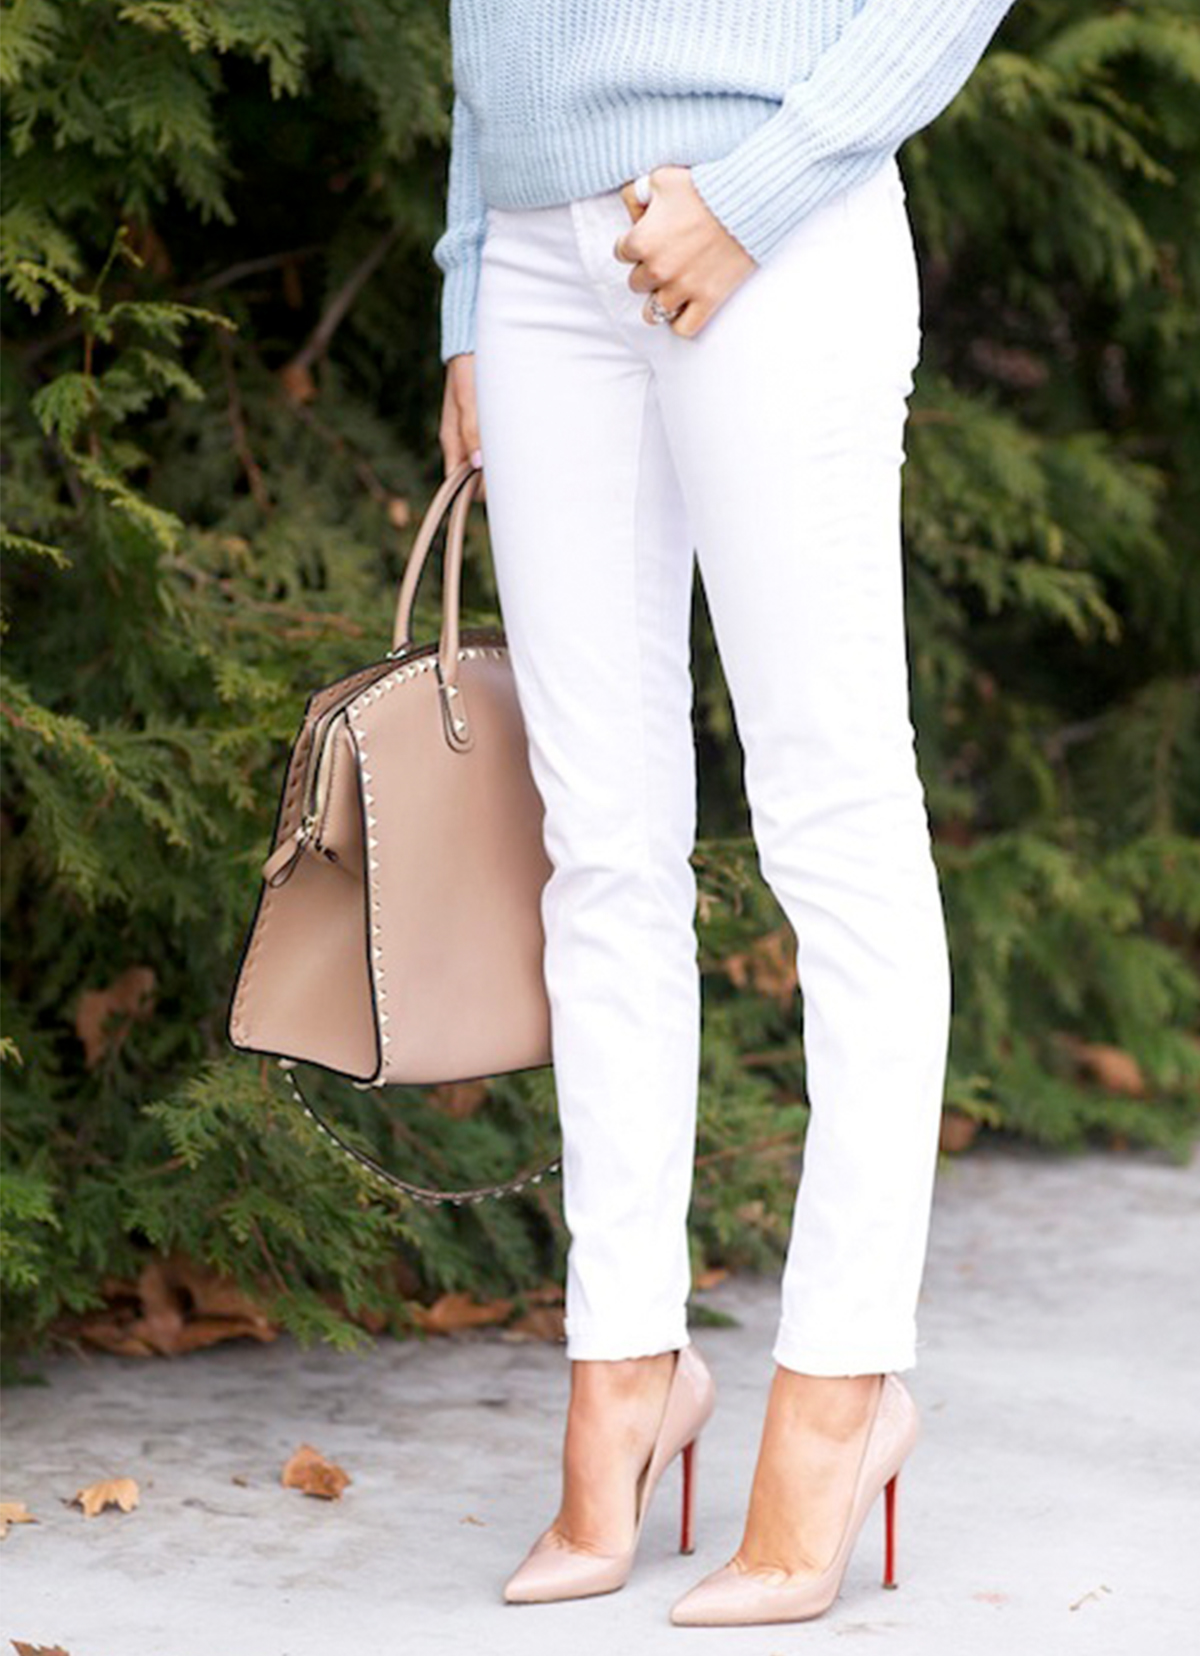 Ways to wear white_White jeans in summer_Best ways to wear white